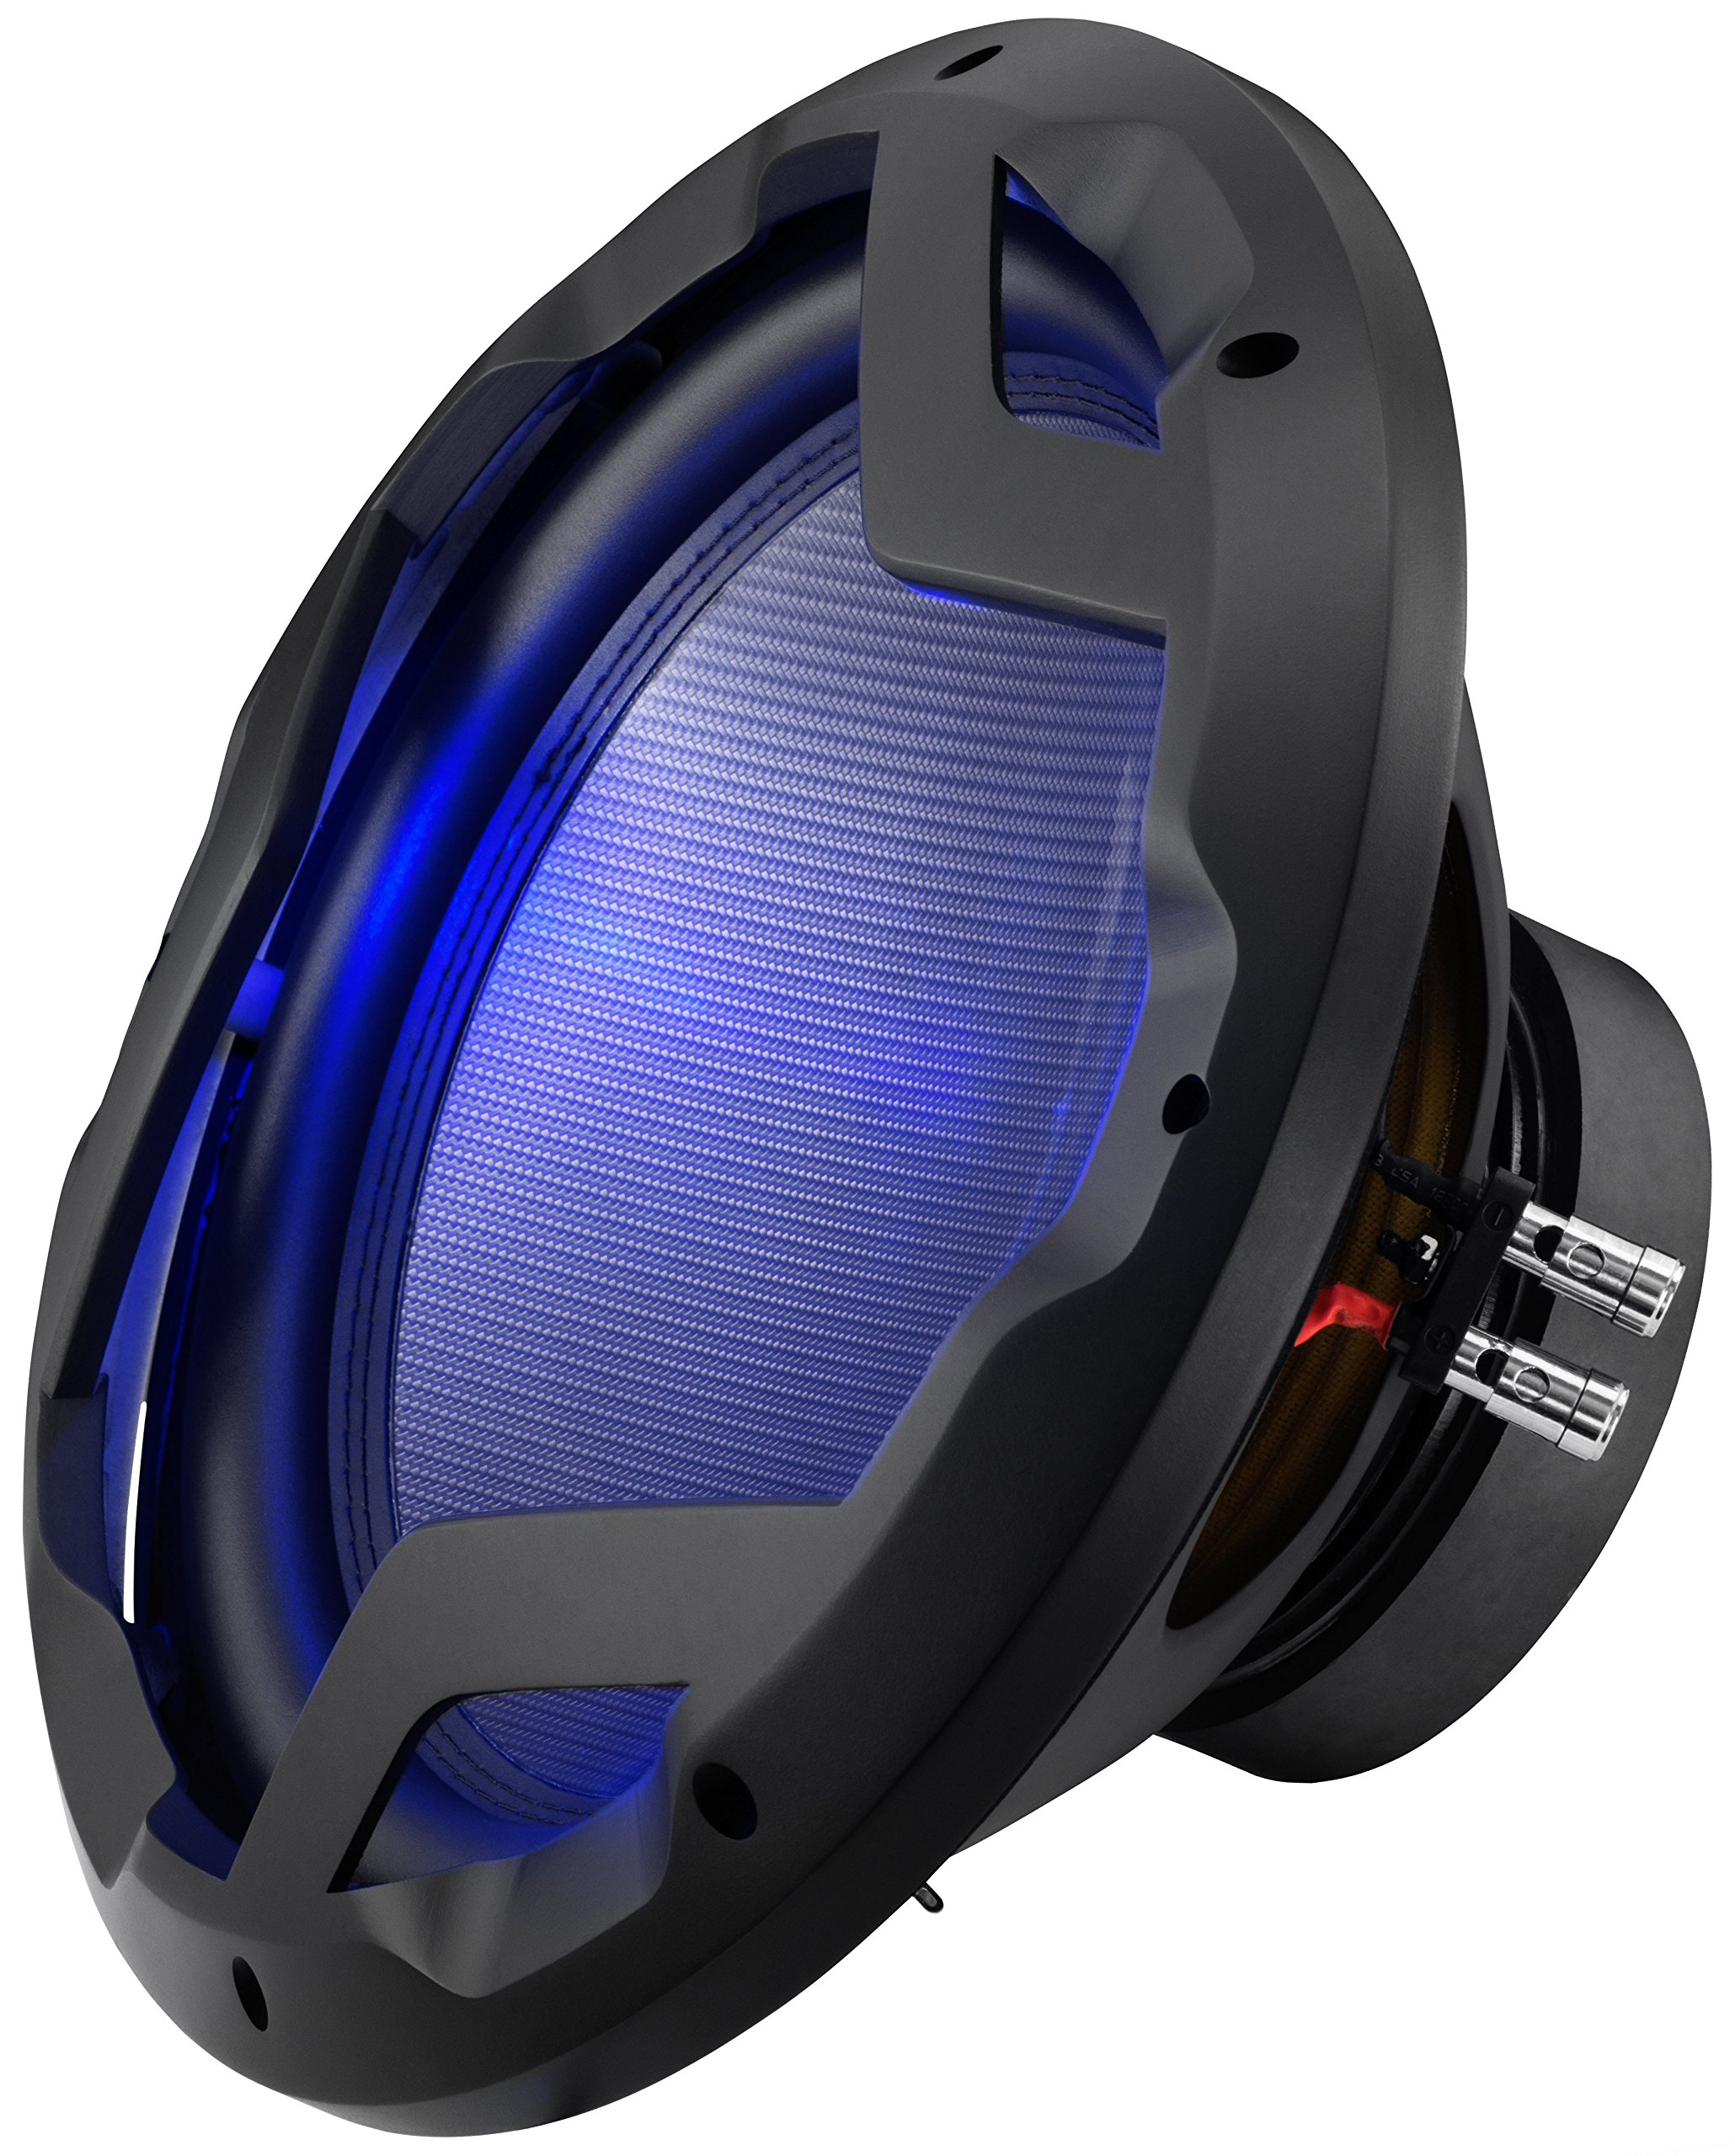 BOSS Audio PD12LED 1600 Watt, 12 Inch, Dual 4 Ohm Voice Coil Car Subwoofer by BOSS Audio Systems (Image #2)